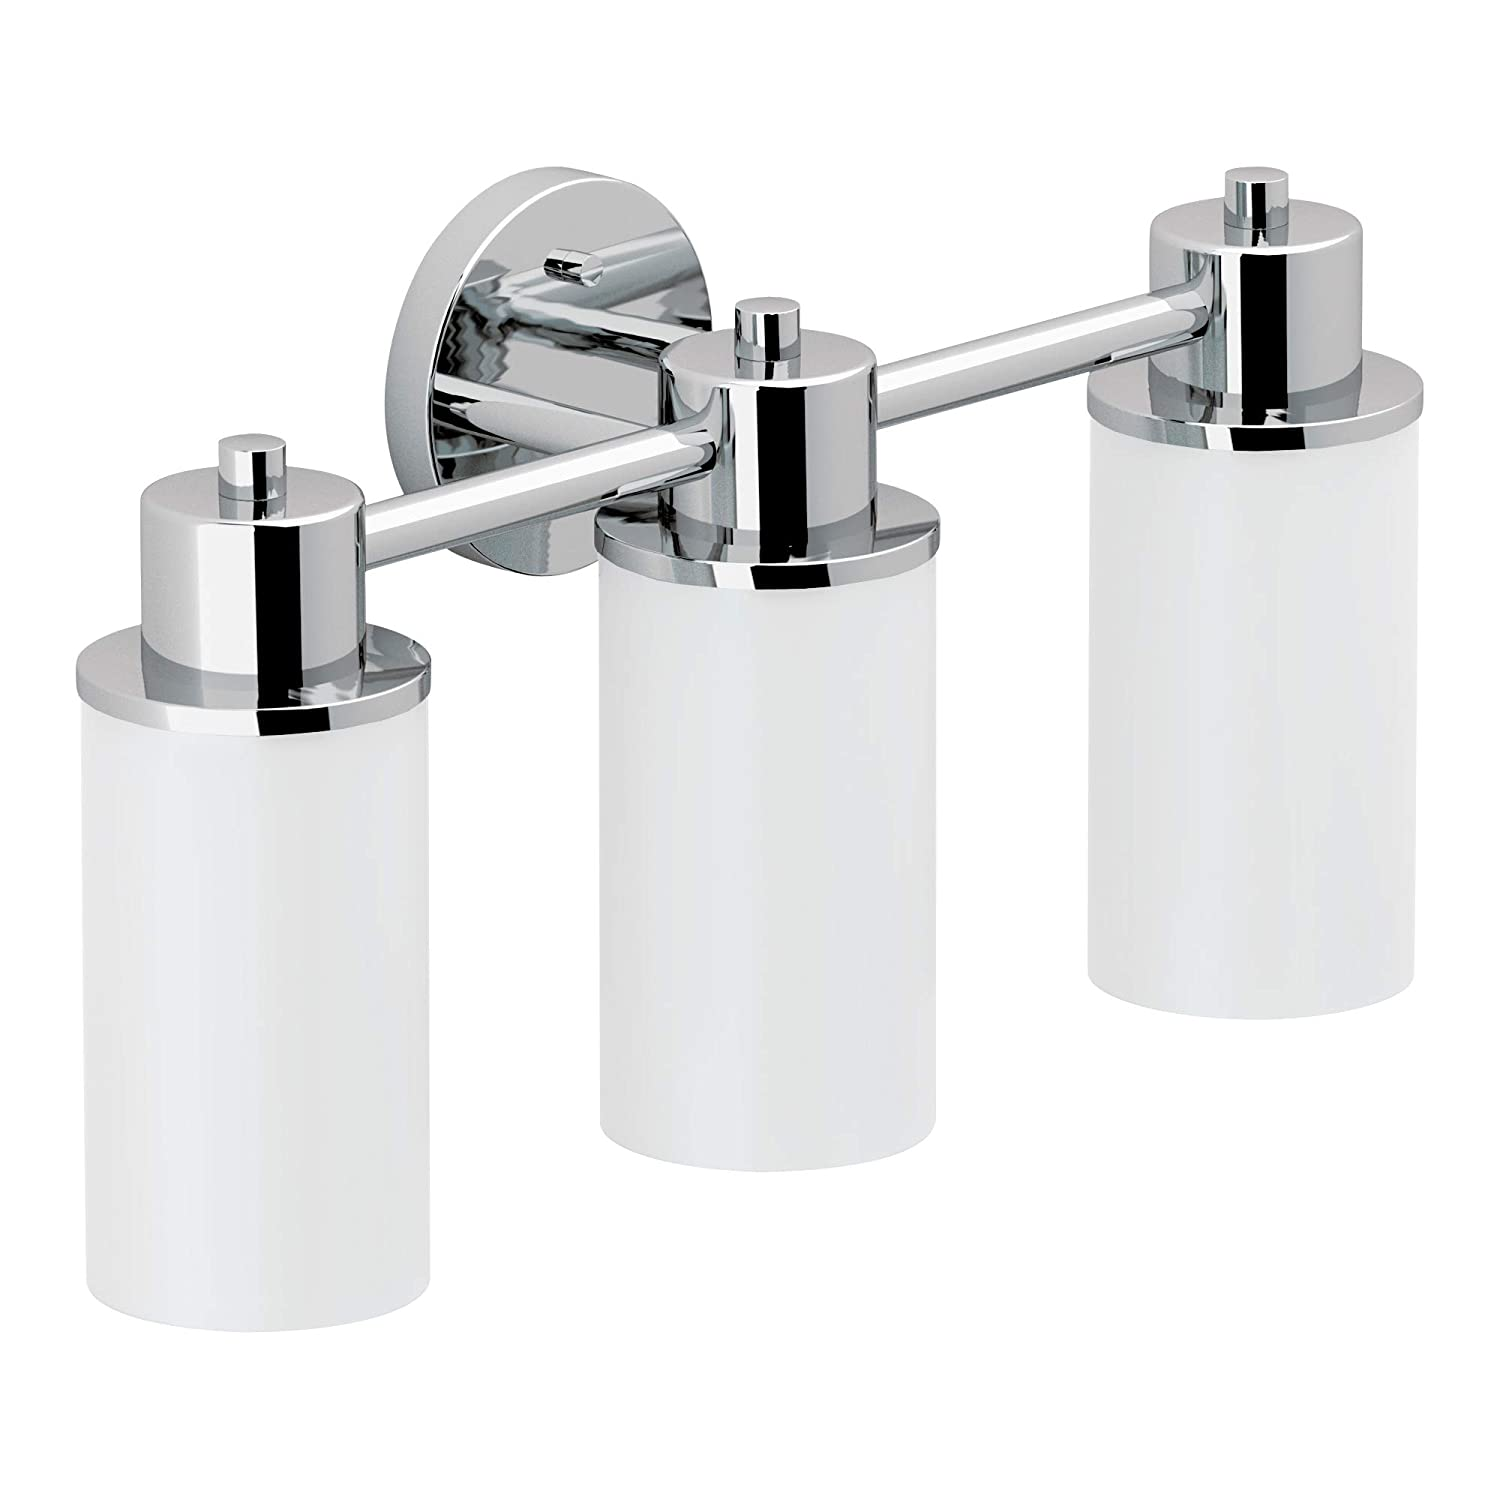 Moen DN0763CH Iso 3-Light Dual-Mount Bath Bathroom Vanity Fixture with Frosted Glass, Chrome